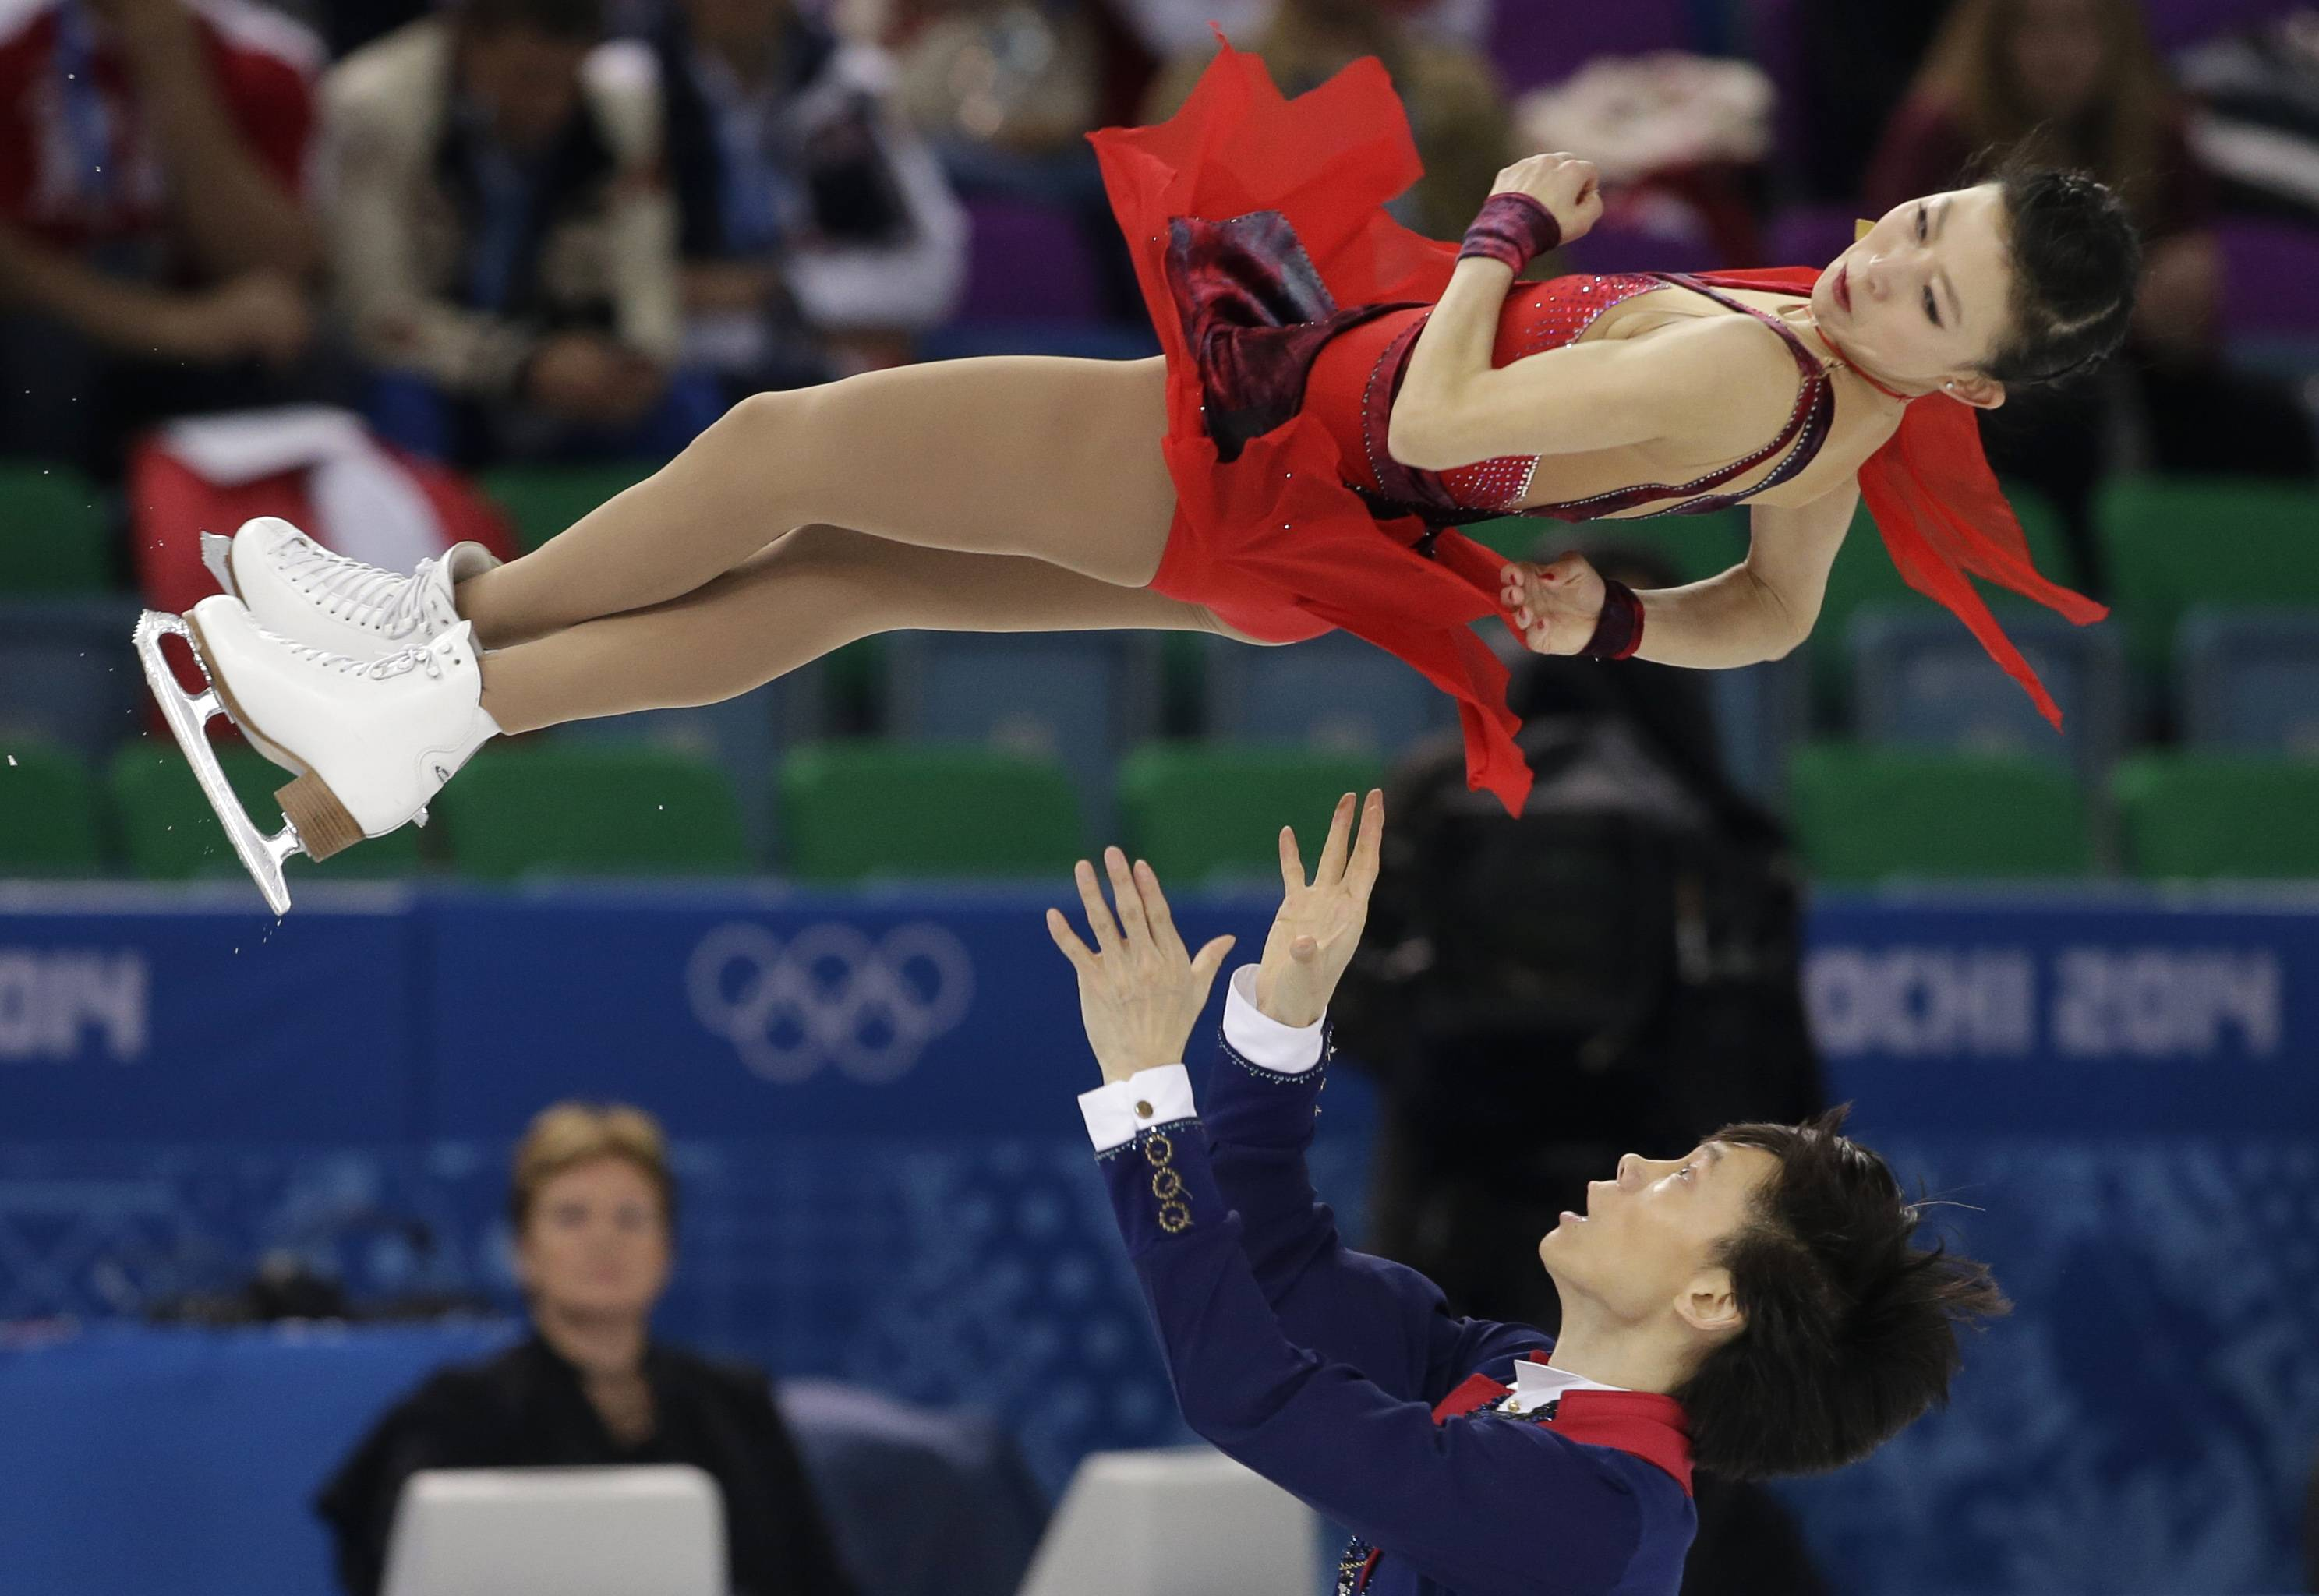 Pang Qing and Tong Jian of China compete in the pairs free skate figure skating competition.